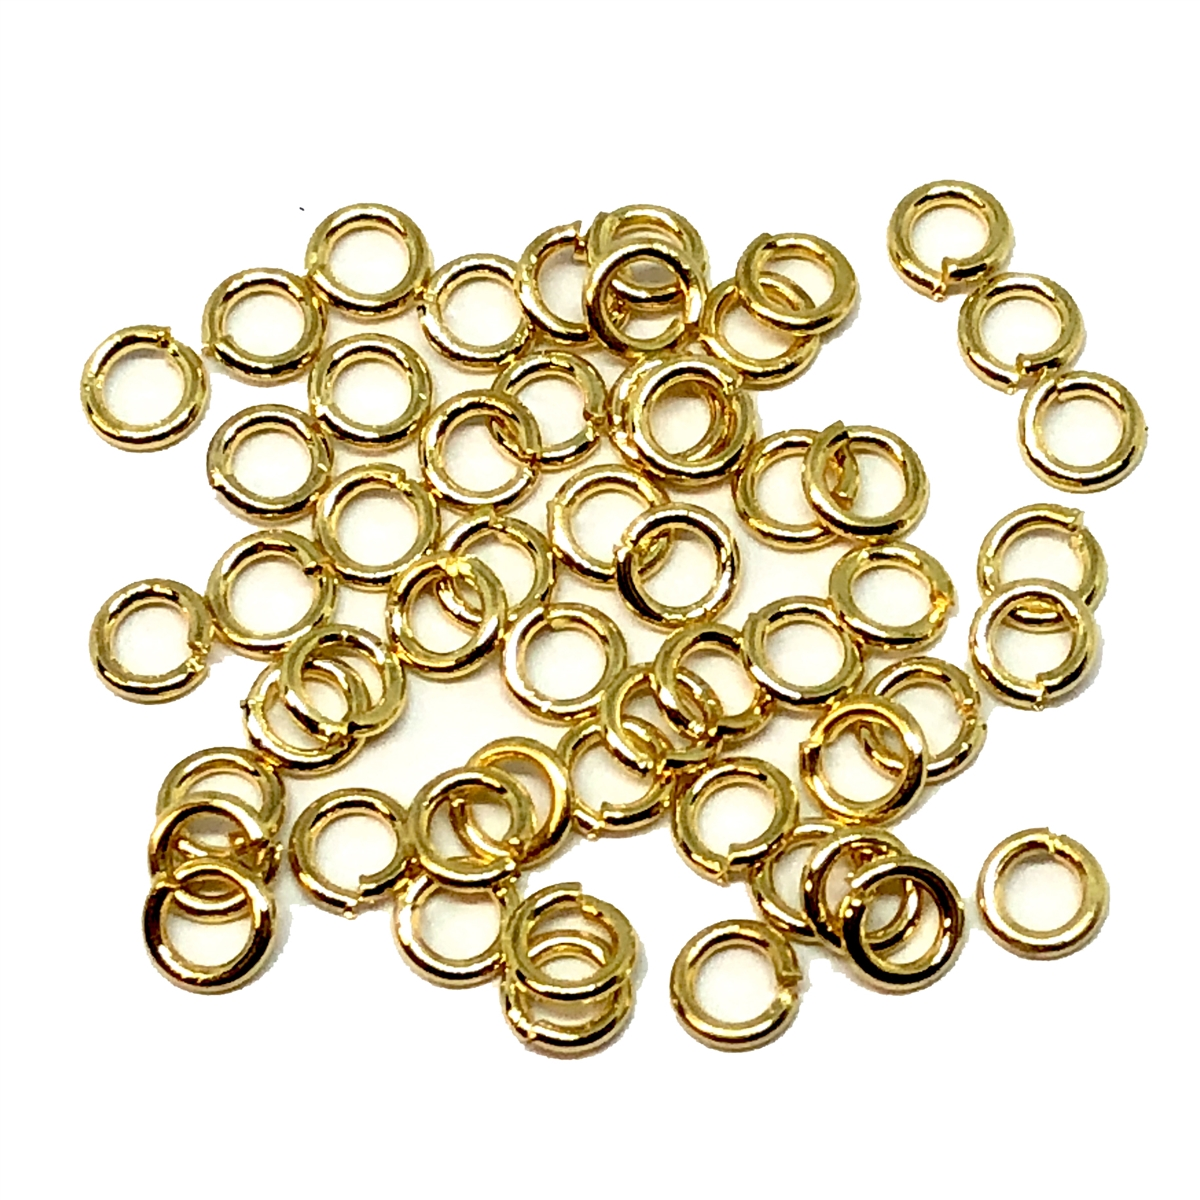 gold plated jump rings jump rings jumps rings gold plated antique  sc 1 st  B\u0027sue Boutiques & gold plated jump rings jump rings jumps rings gold plated ...